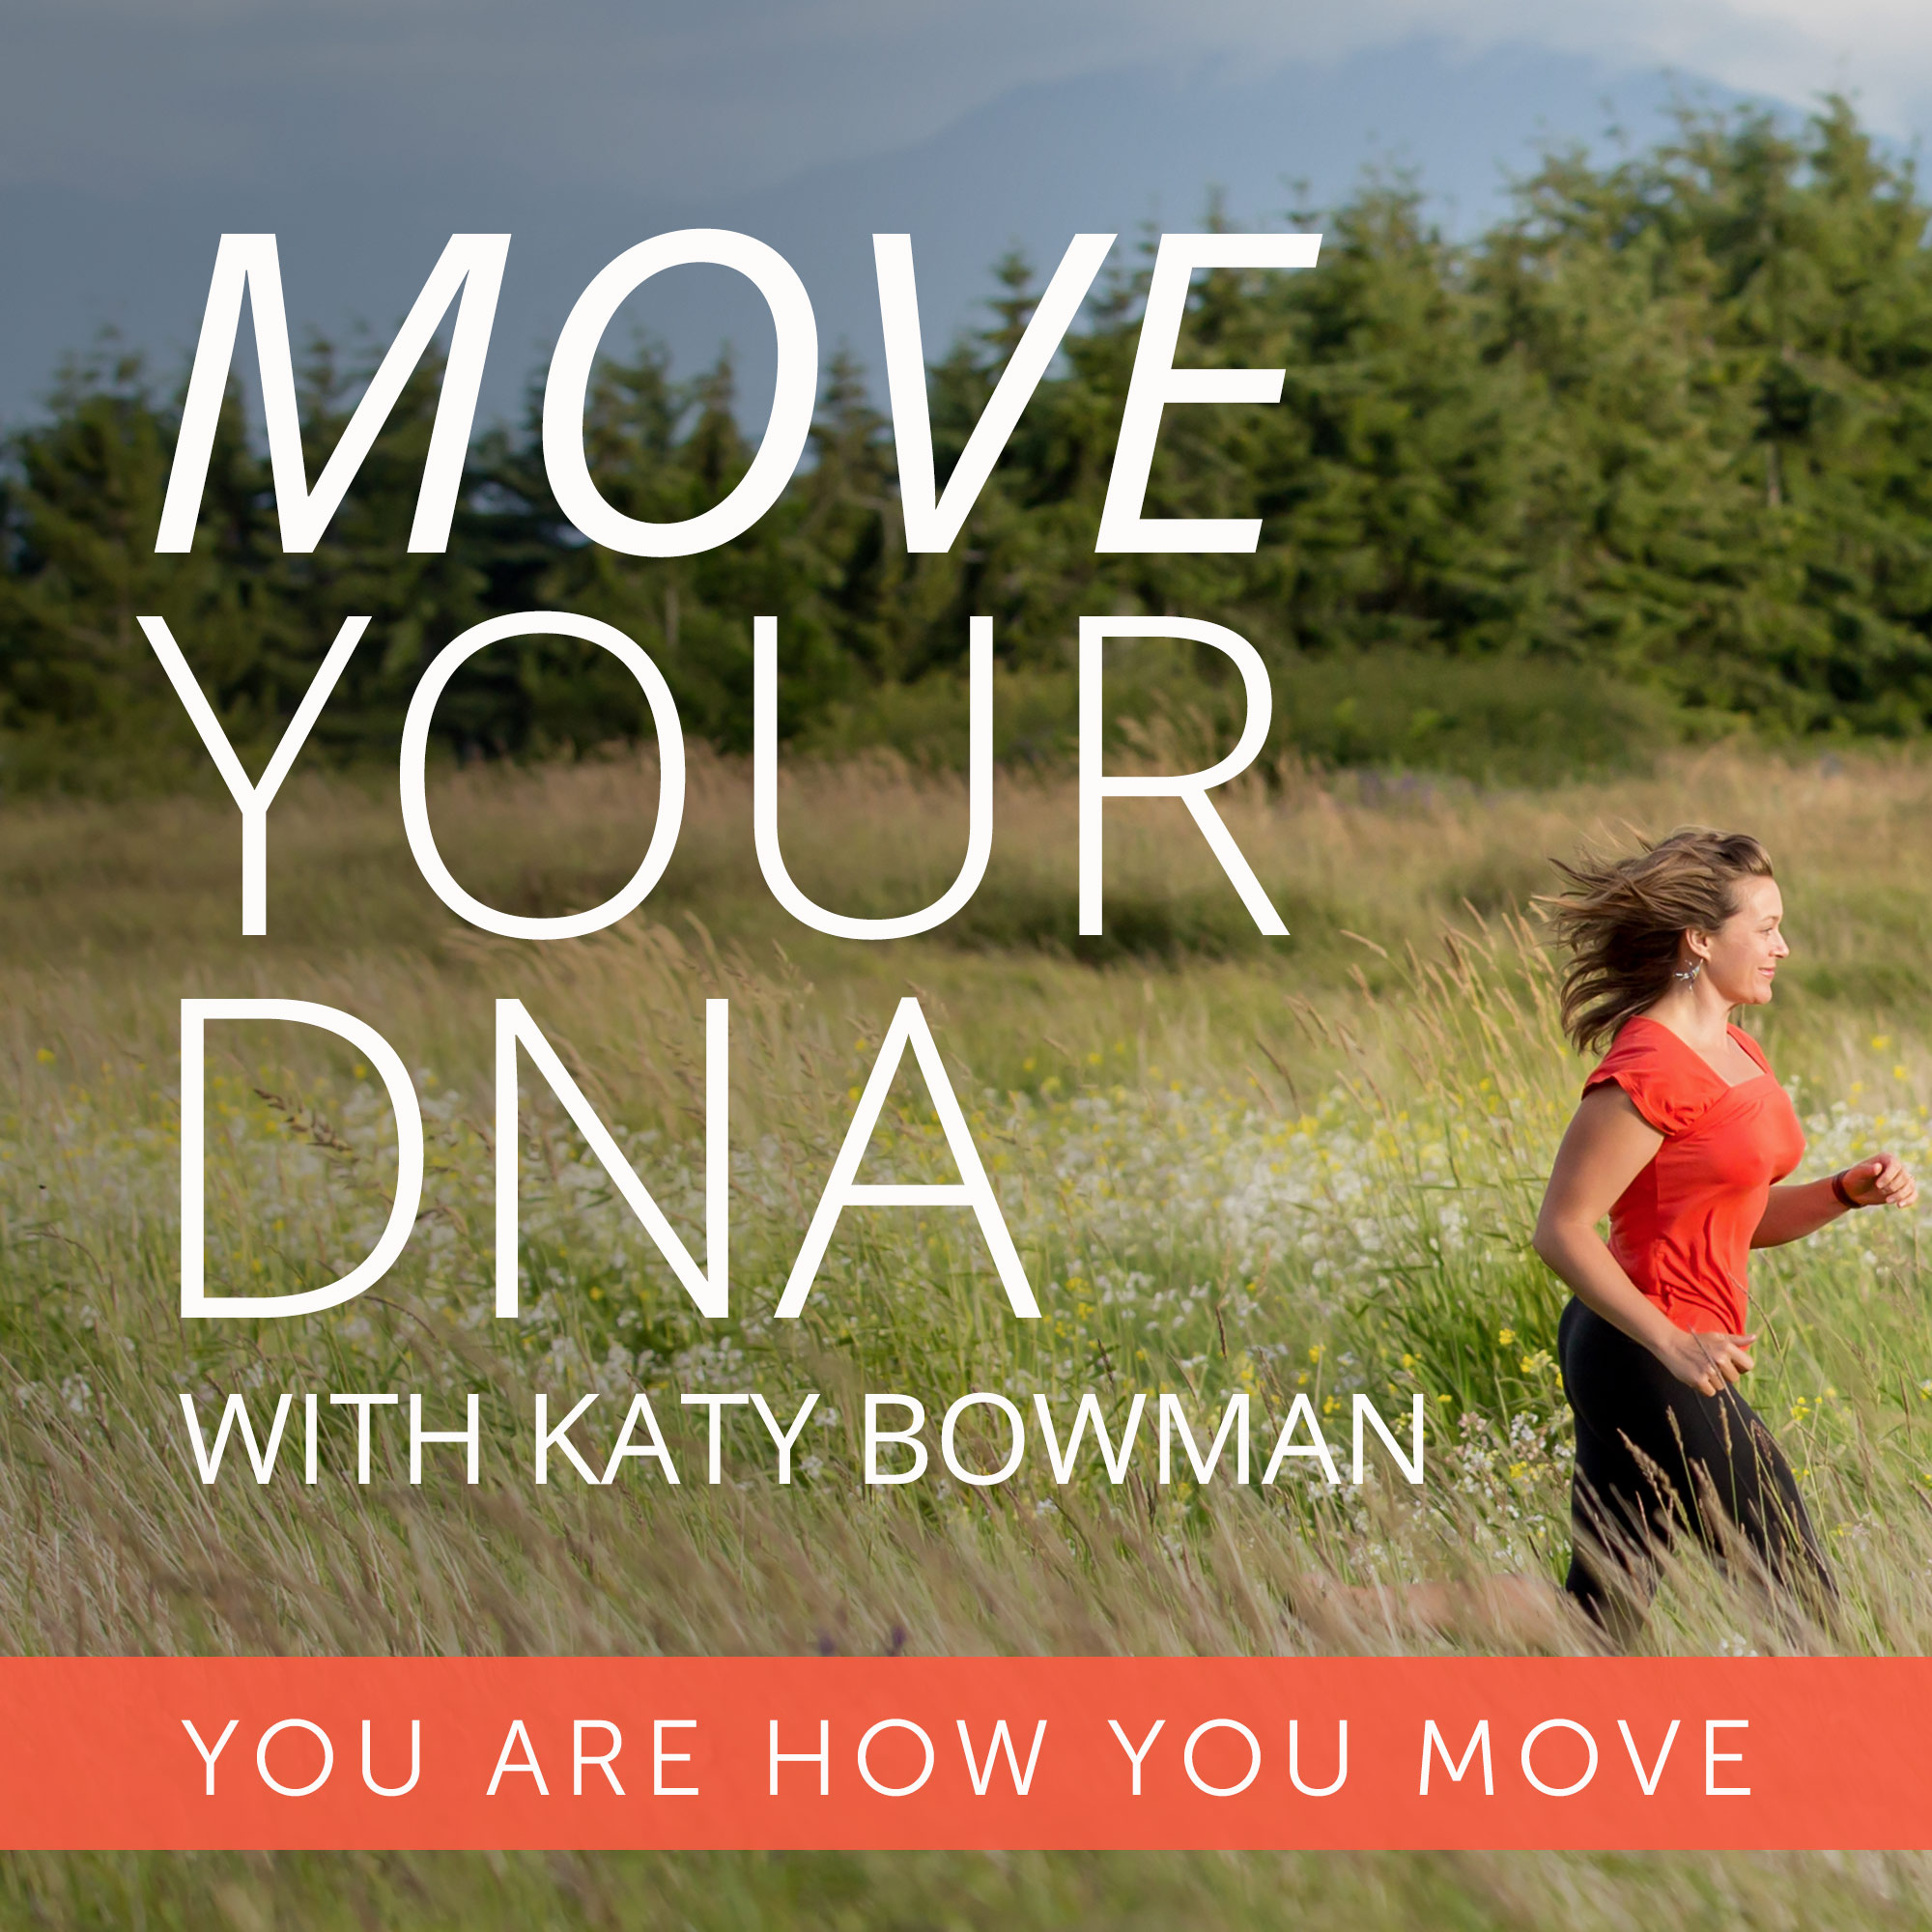 move your dna.jpg